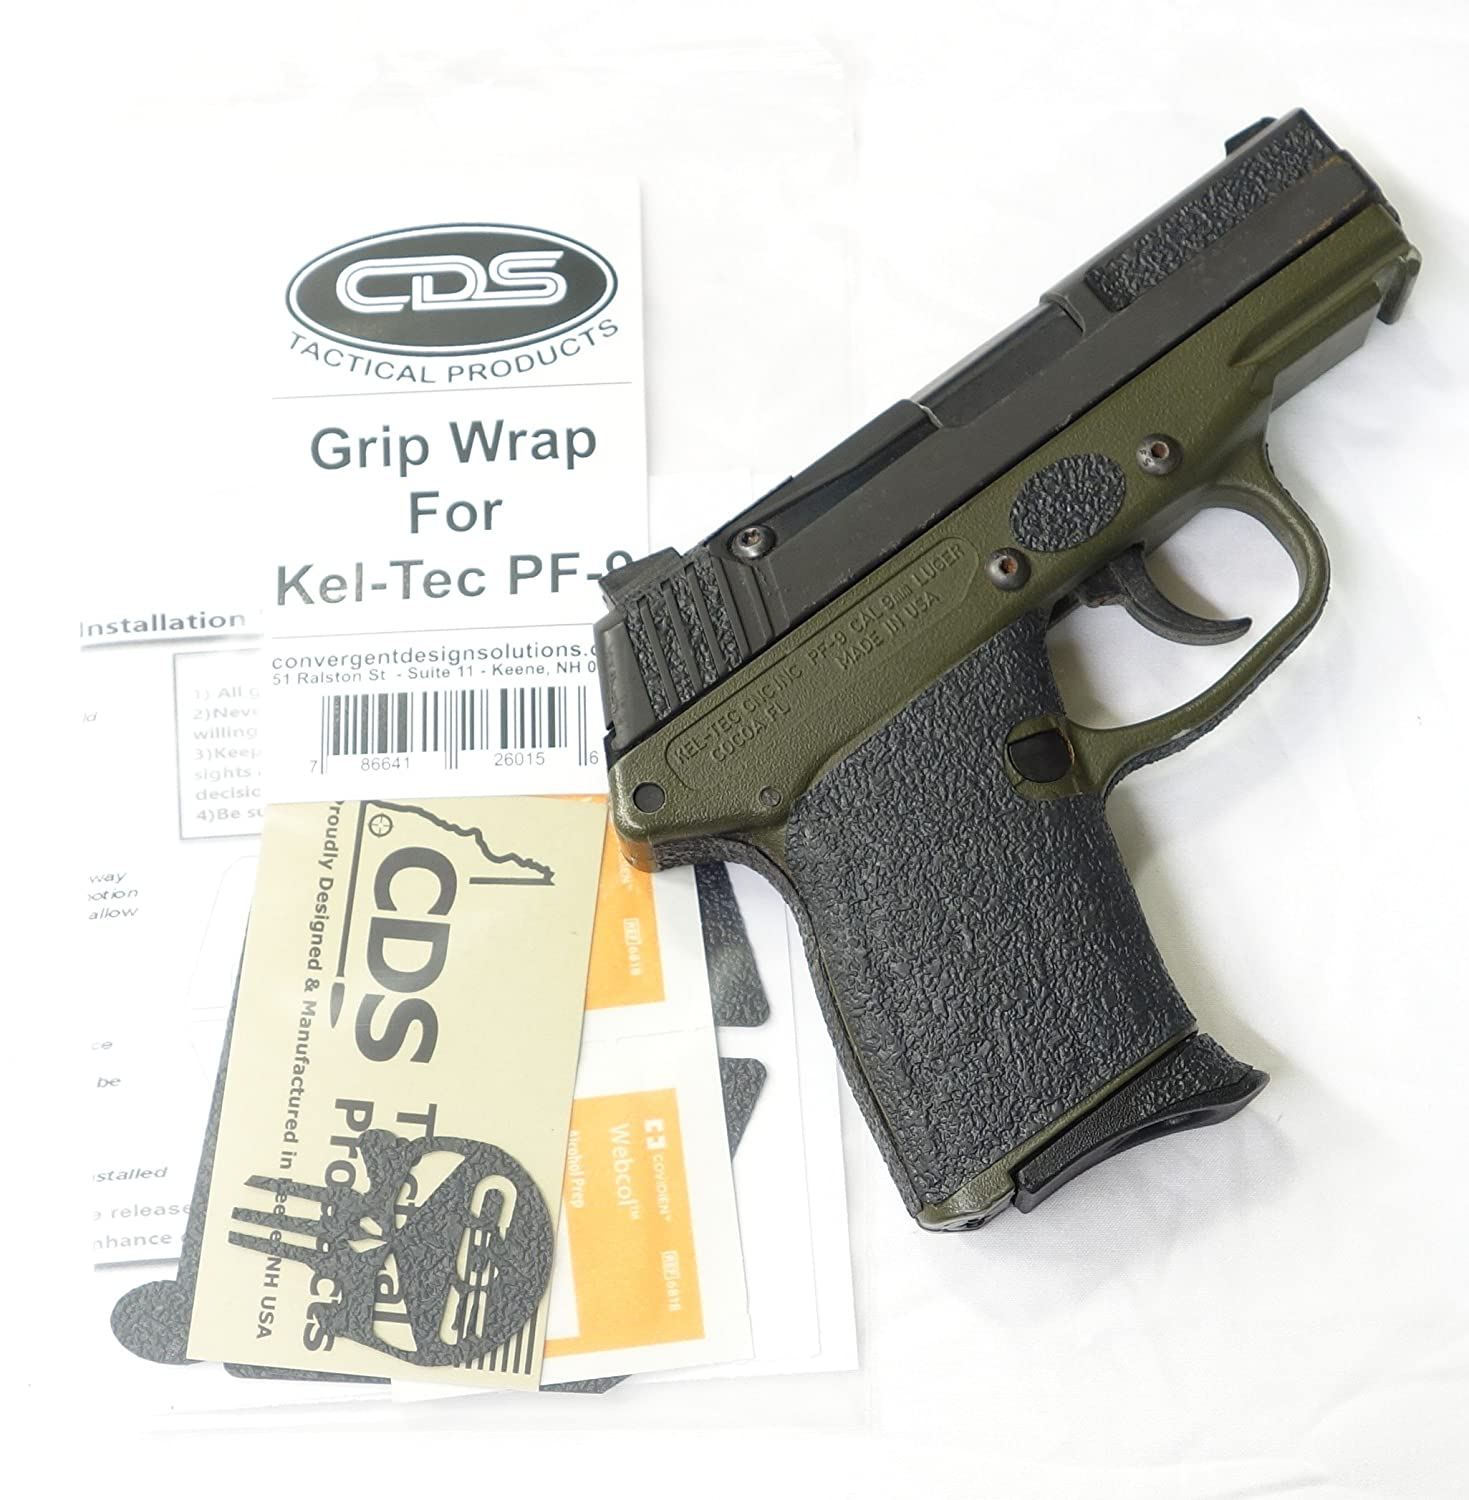 Grip Wrap for Kel-Tec PF-9 Gen 2, Grips - Amazon Canada